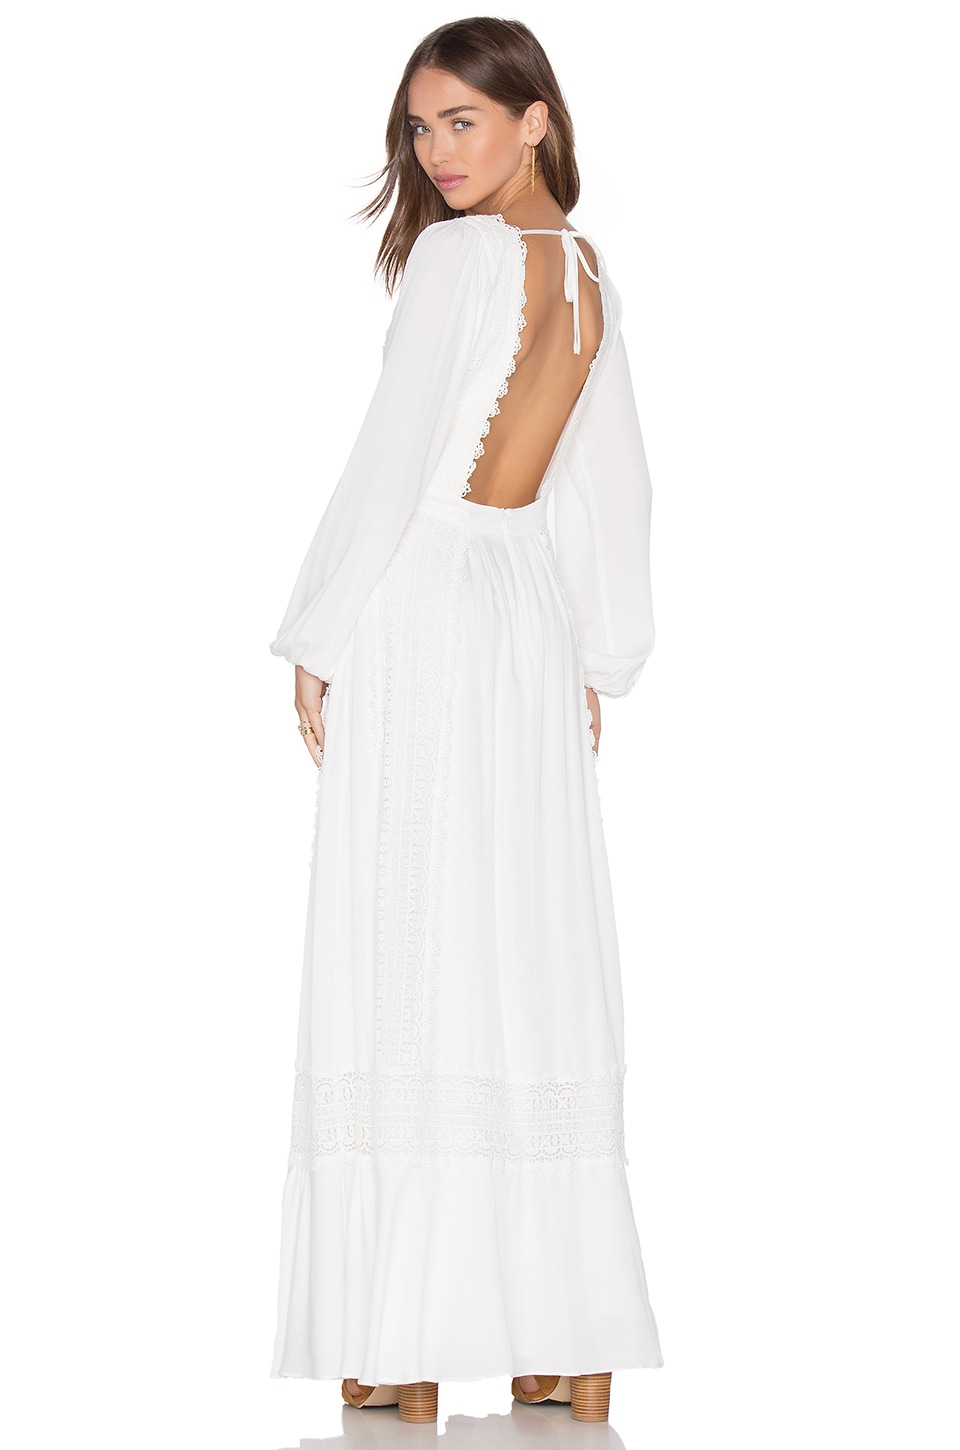 MAJORELLE Prairie Maxi Dress in Ivory